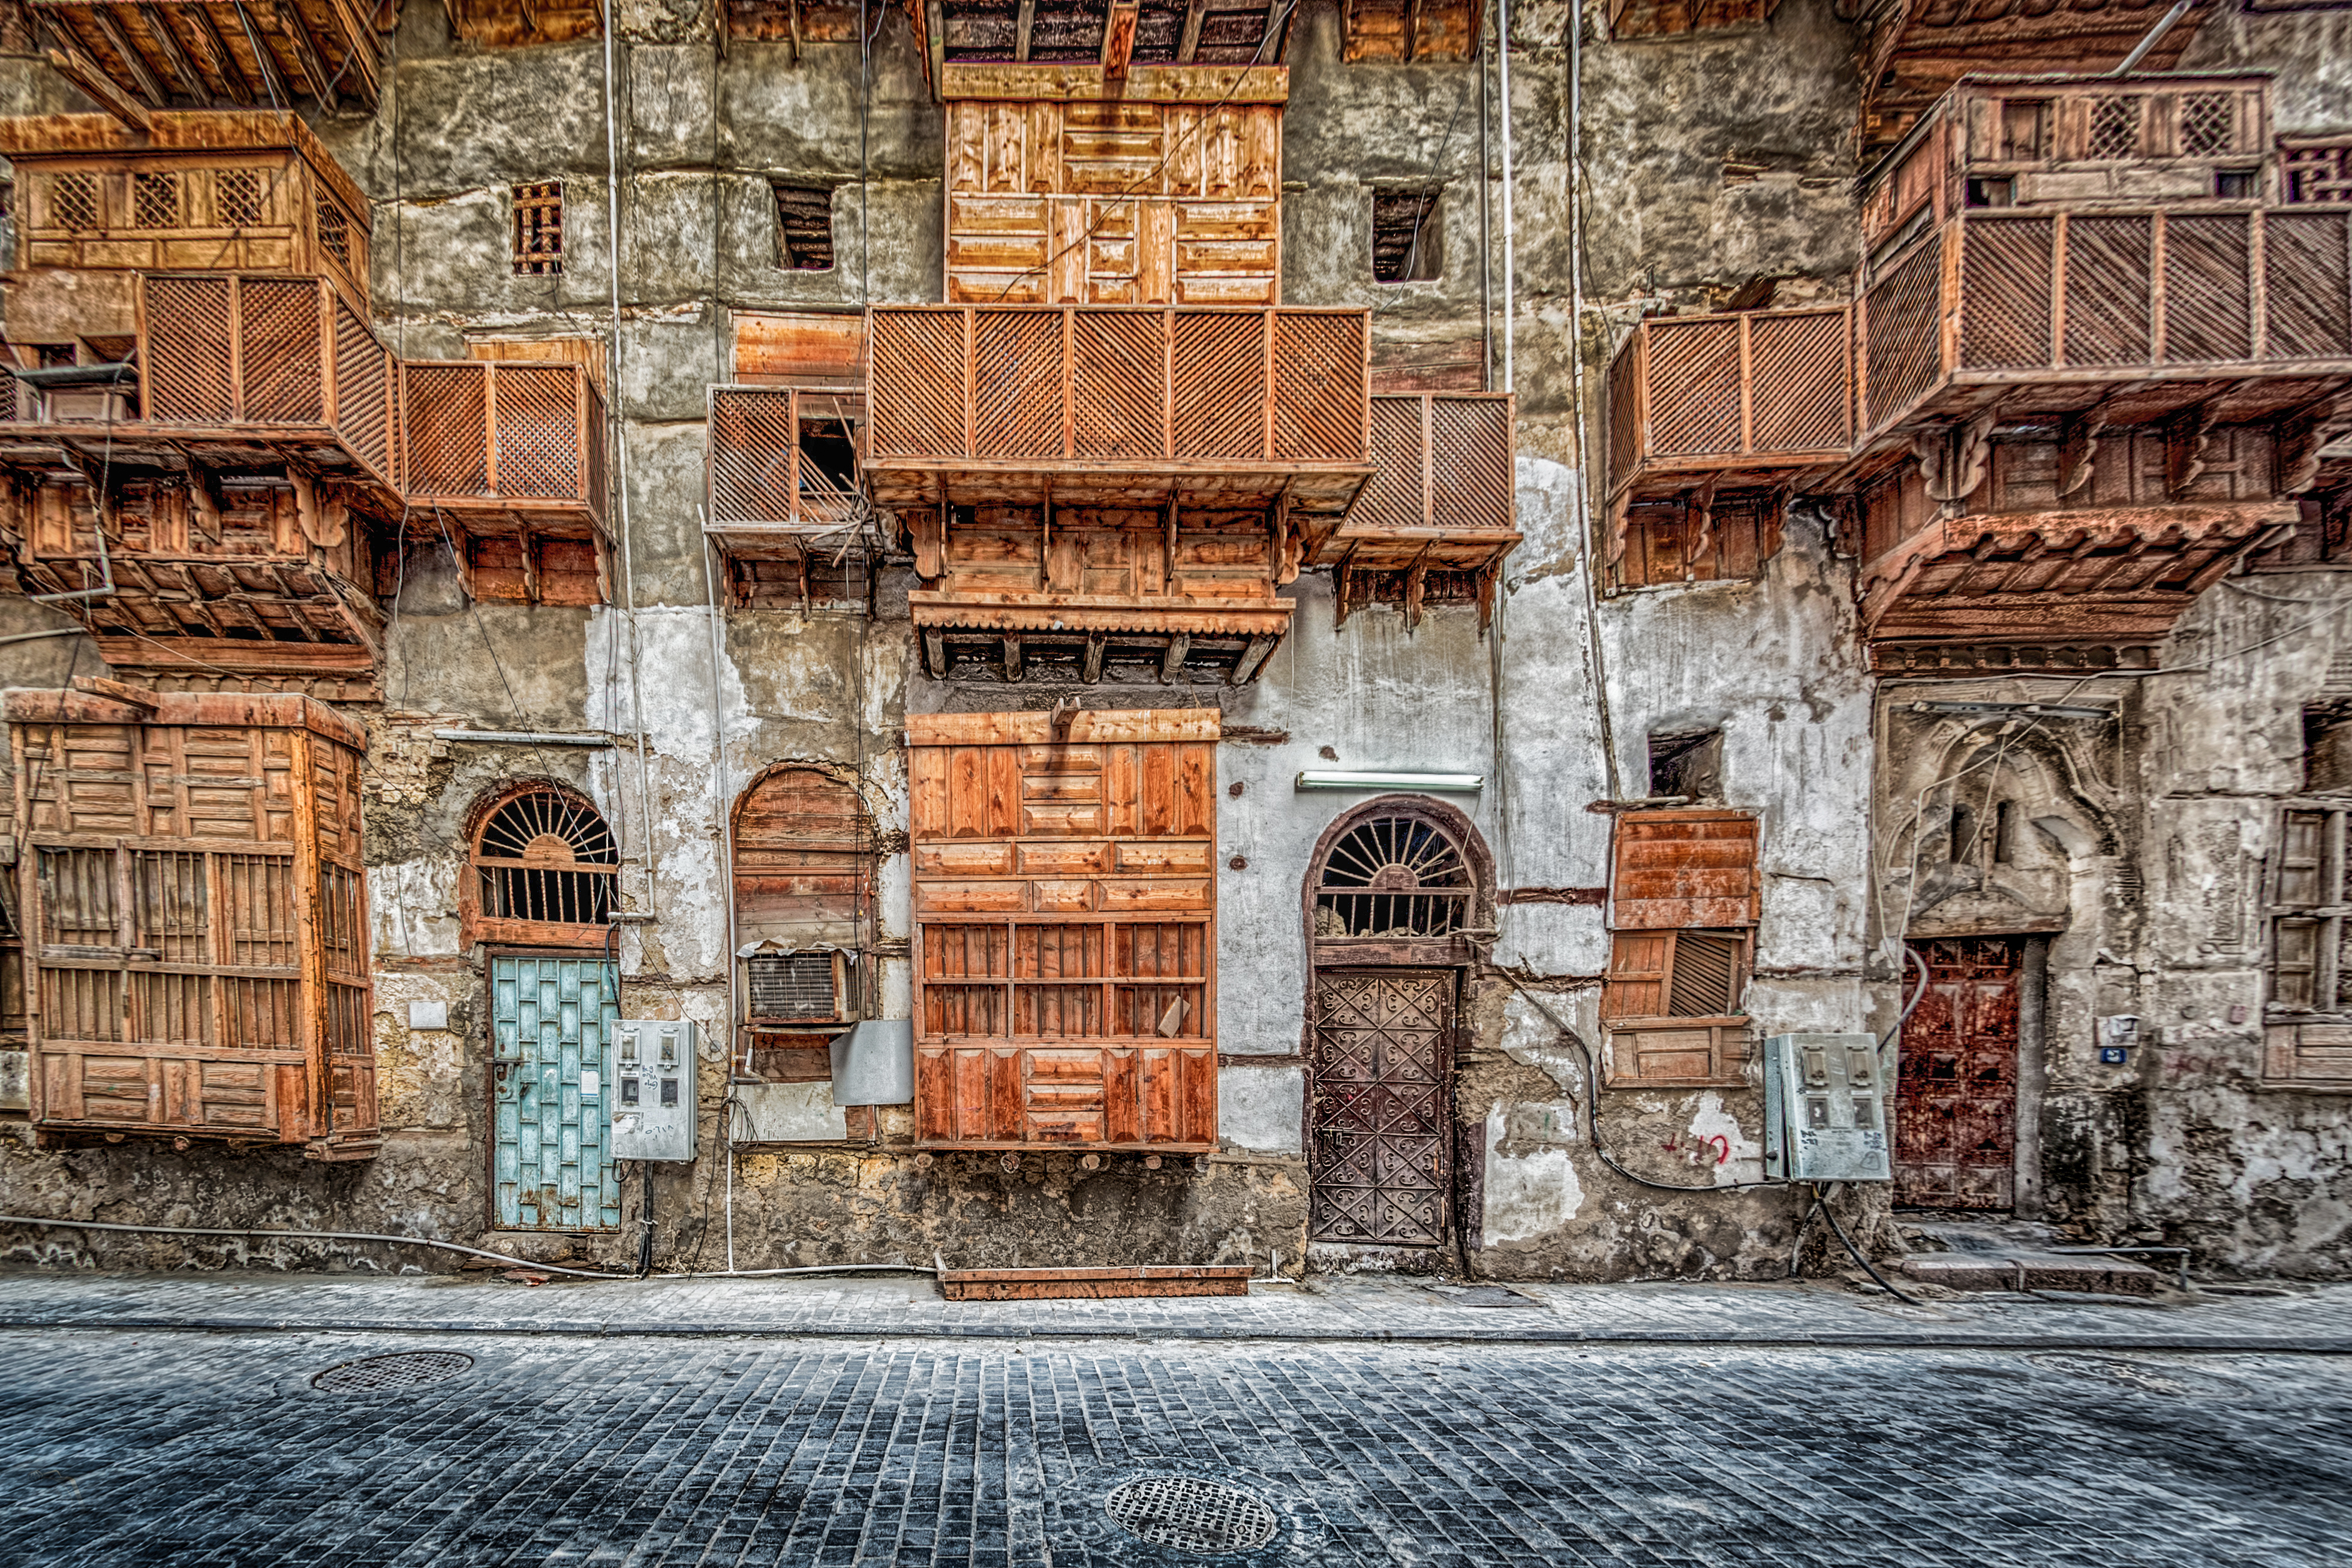 The old town of Jeddah on Saudi Arabia's Red Sea